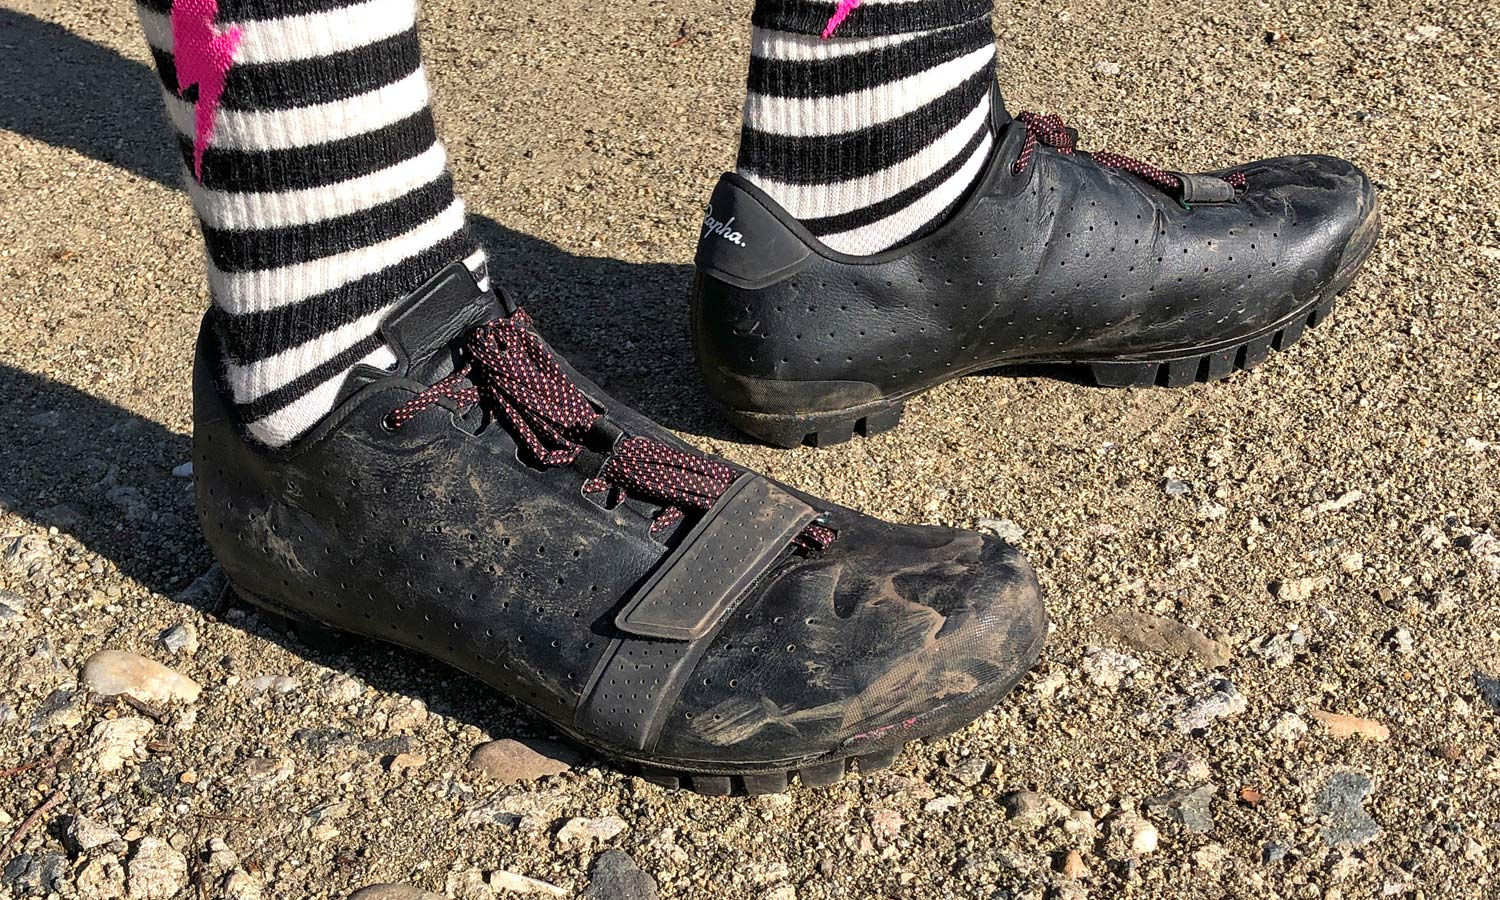 Rapha Explore gravel bike shoes & Classic road bike shoes were developed in-house by Rapha, road & off-road riding